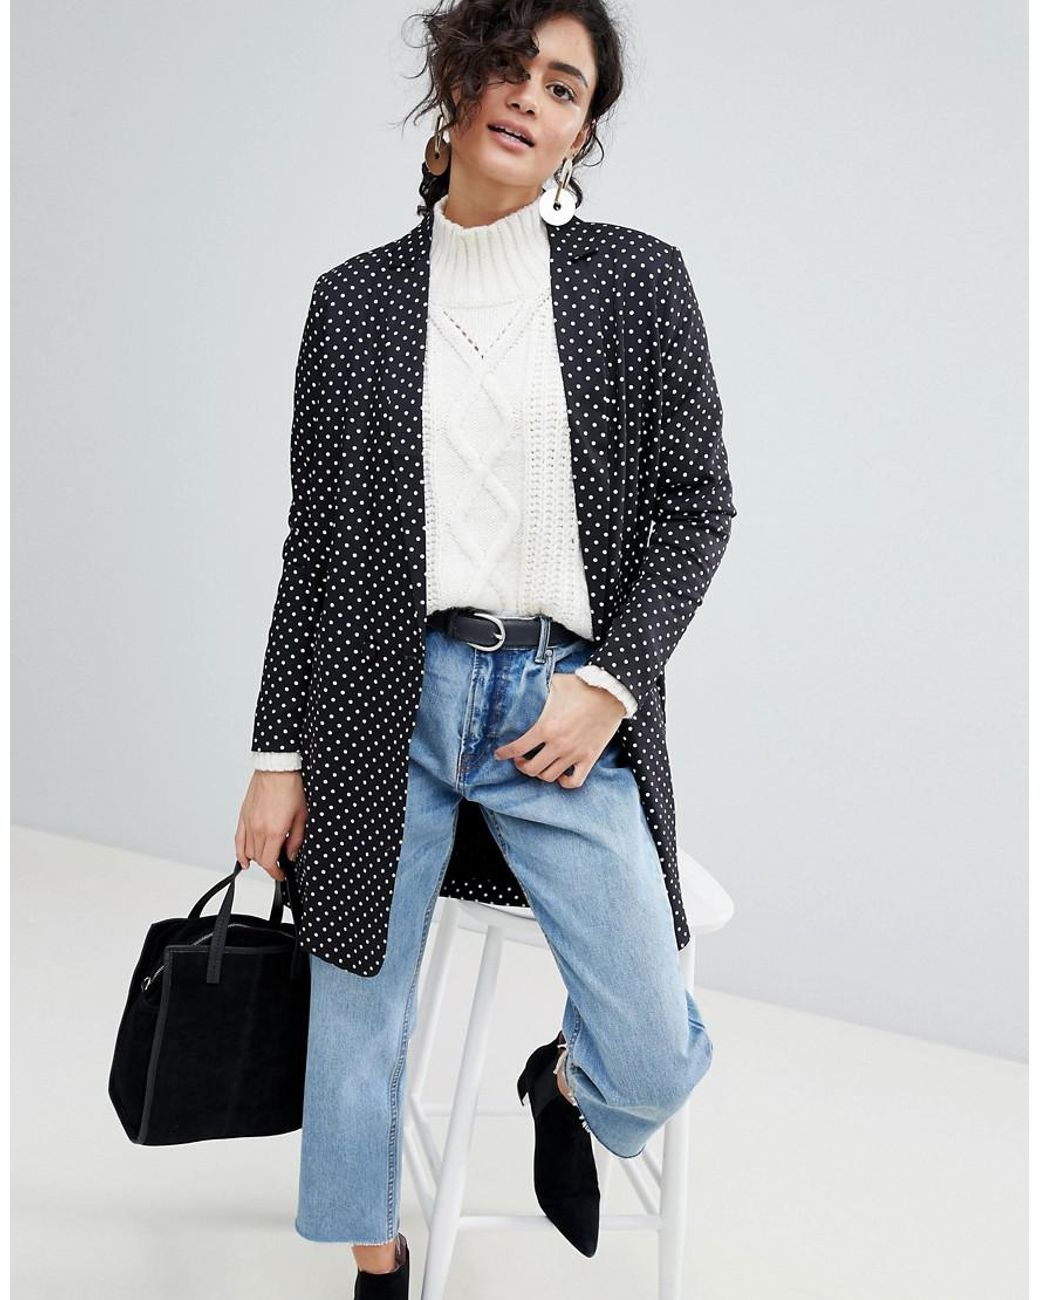 5d08f4e1a Lyst - SELECTED Femme Polka Dot Long Blazer in Black